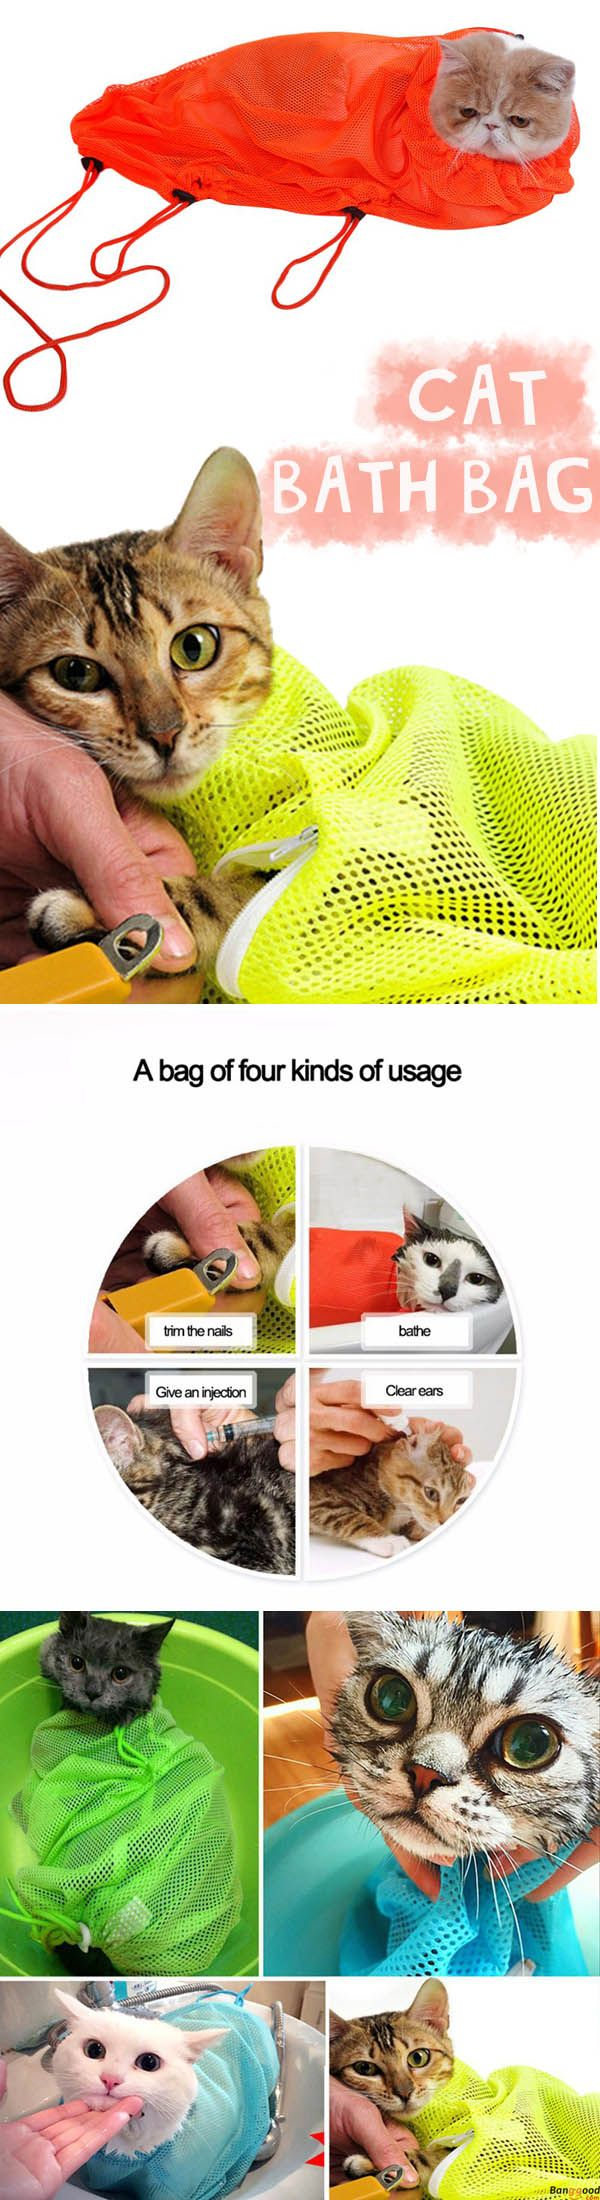 Pet Cat Multi-function Grooming Bags Nail Cutting Bath Protect Bags Pick Ear Blowing Hair Beauty Bag. Shop at banggood with super affordable price.